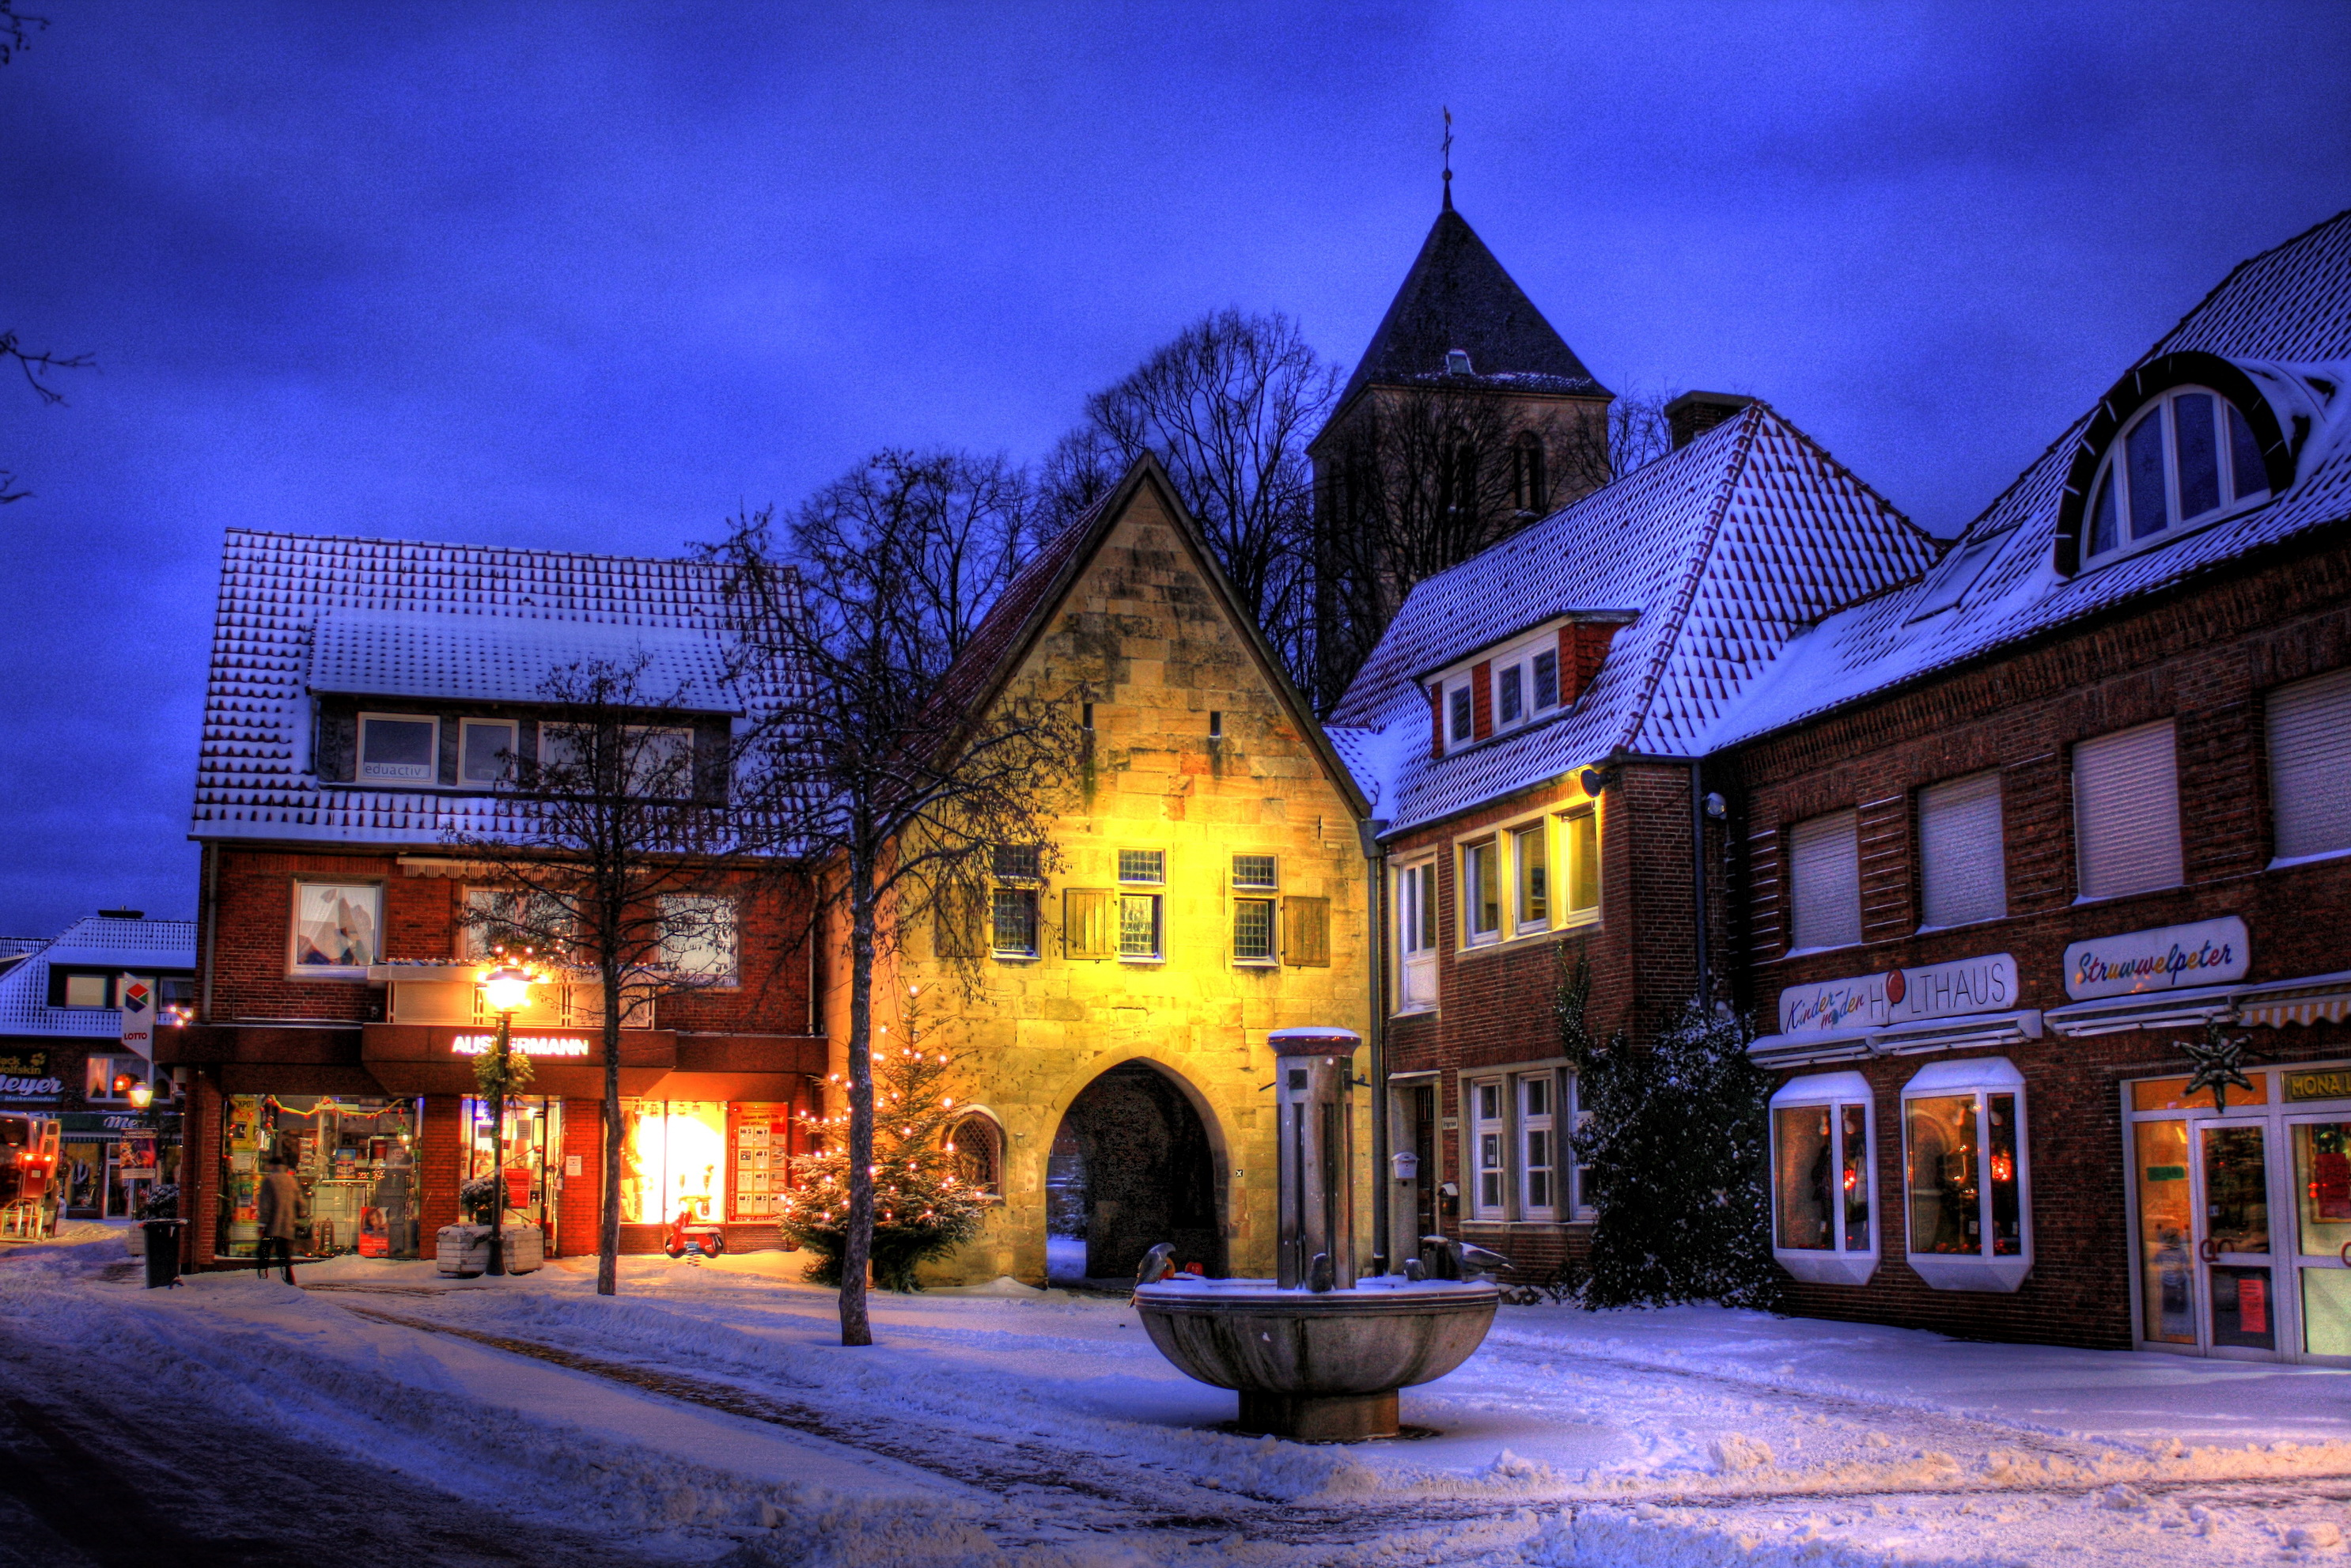 germany seasons winter houses street lights snow hdr street havixbeck cities town winter snow. Black Bedroom Furniture Sets. Home Design Ideas